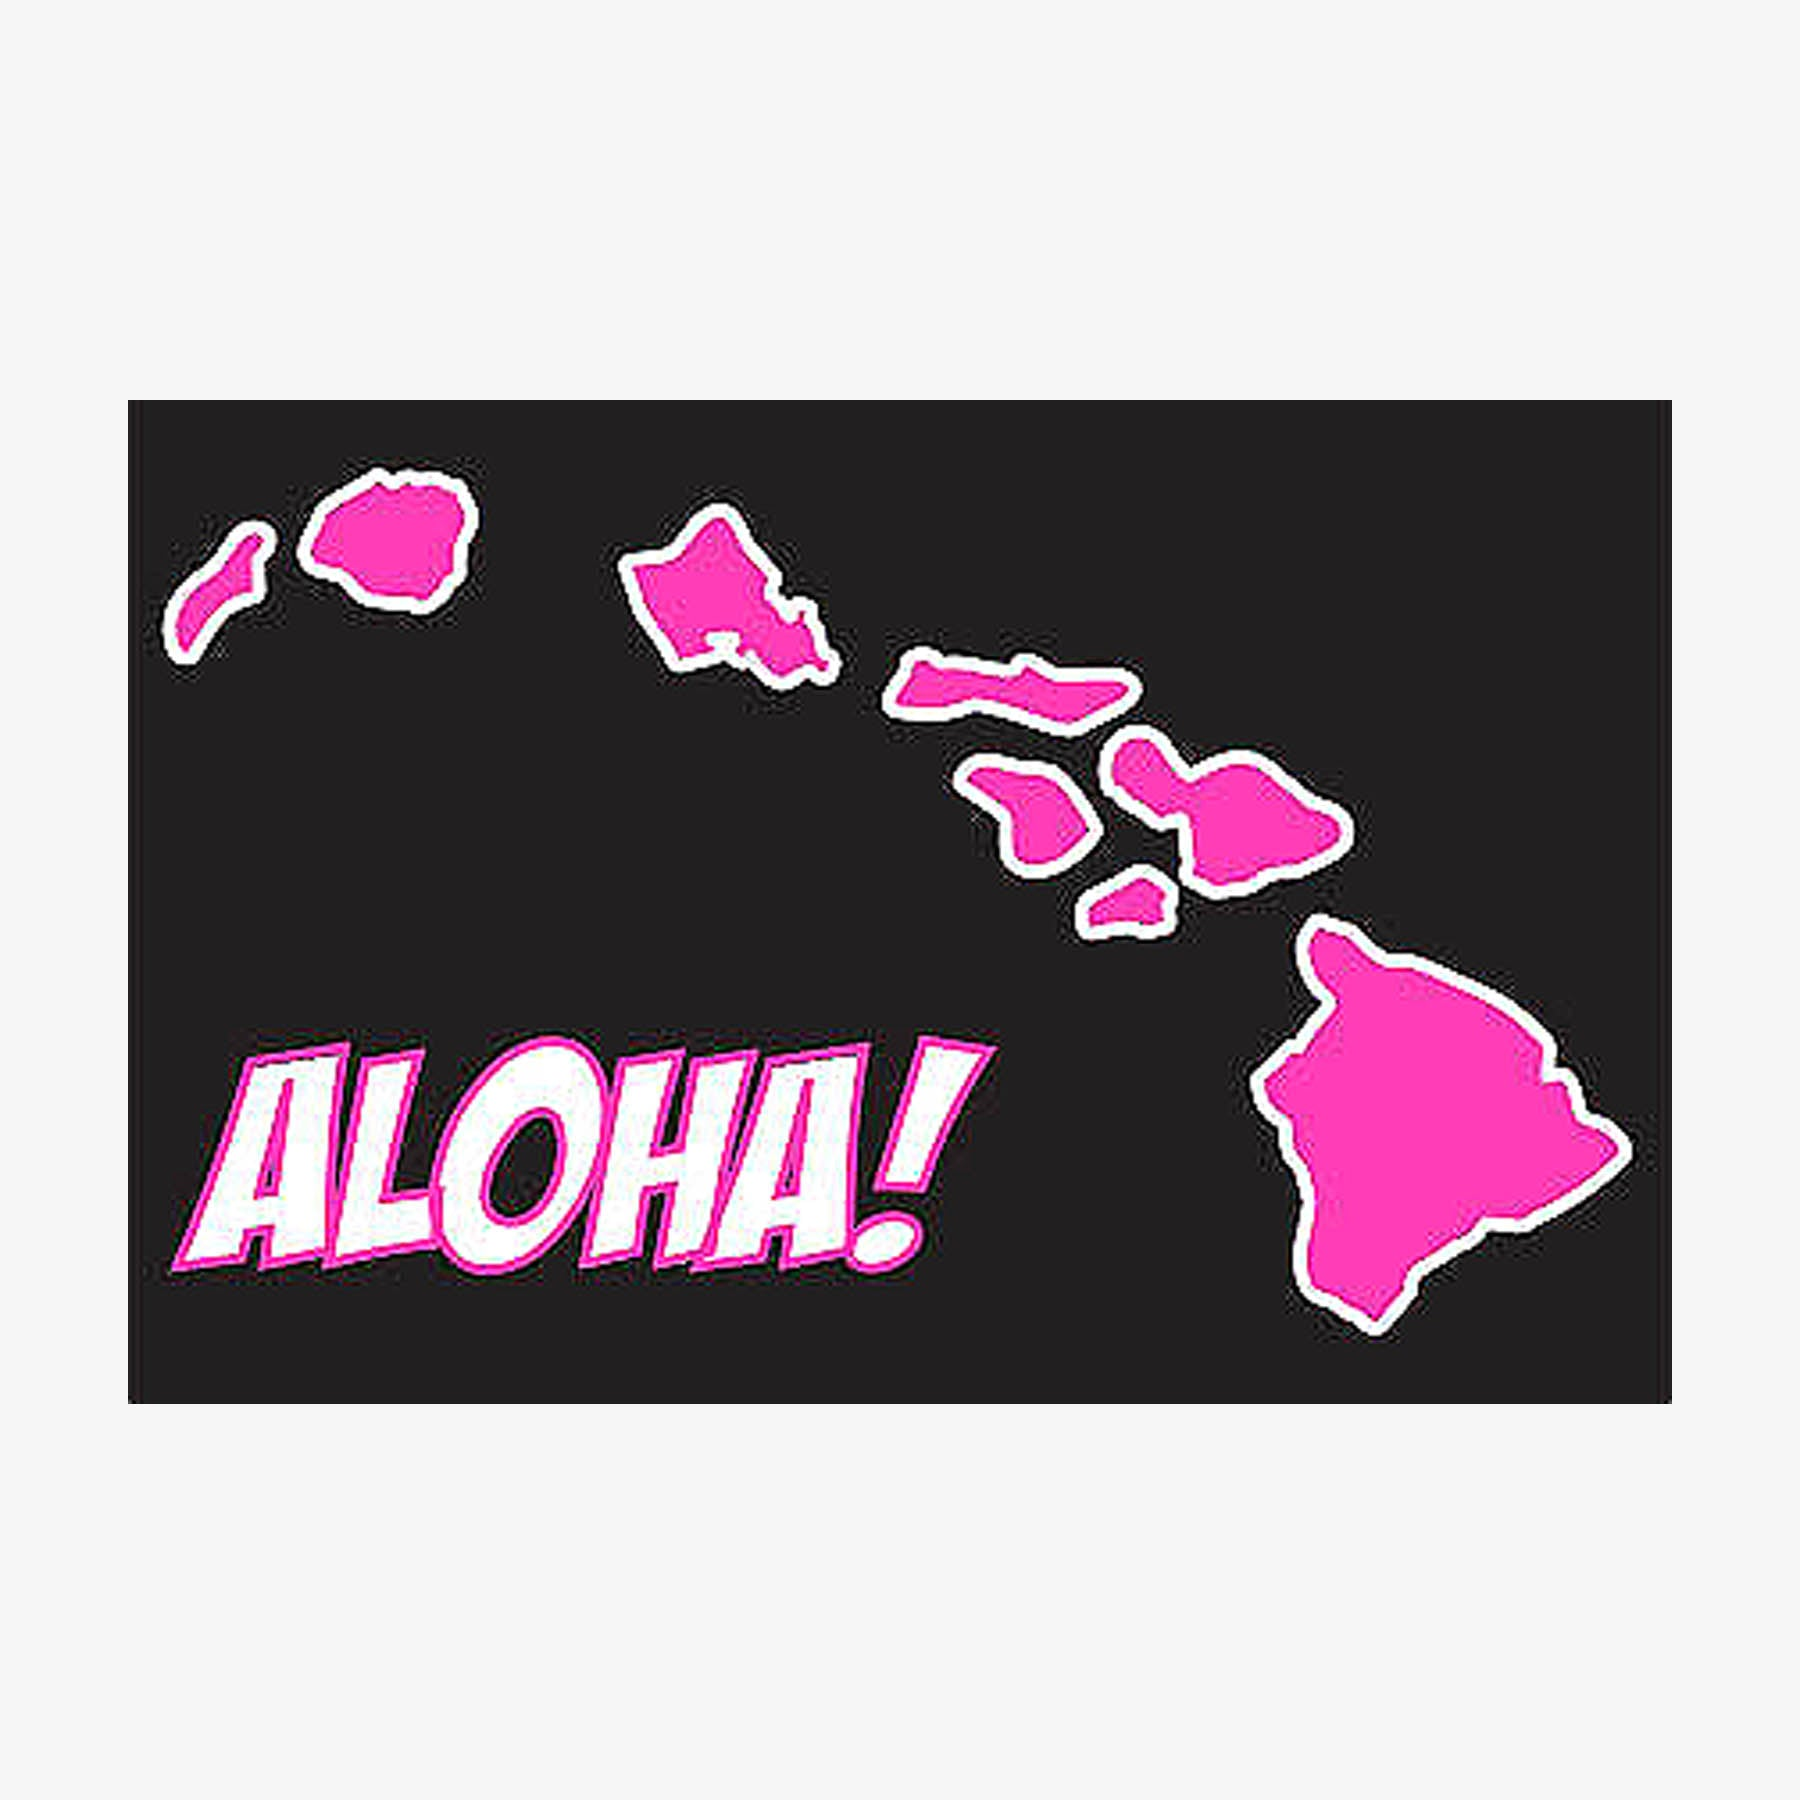 Hawaiian Islands Aloha Sticker